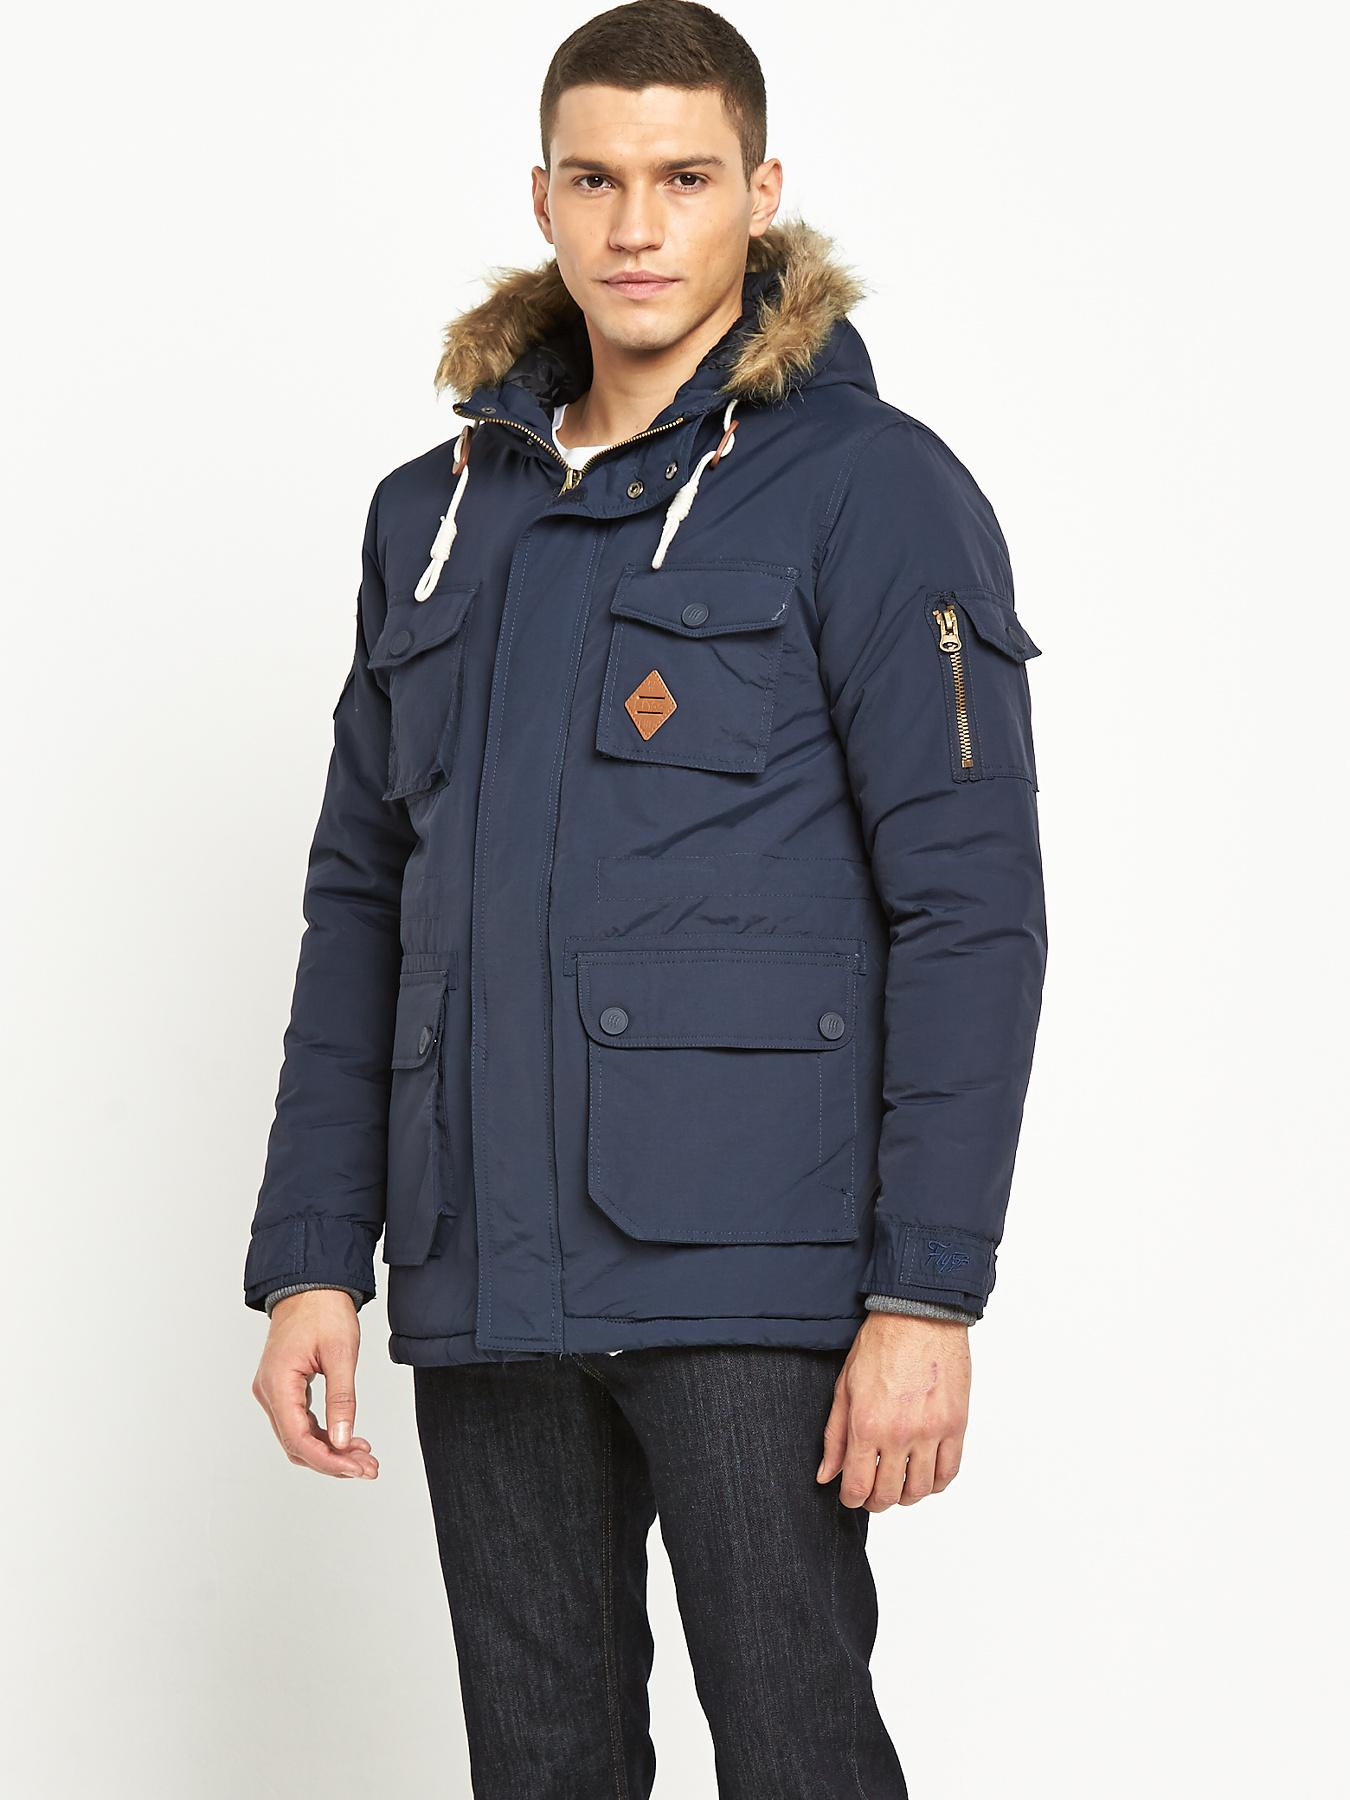 Fly53 Mens Winterton Parka - Navy, Navy